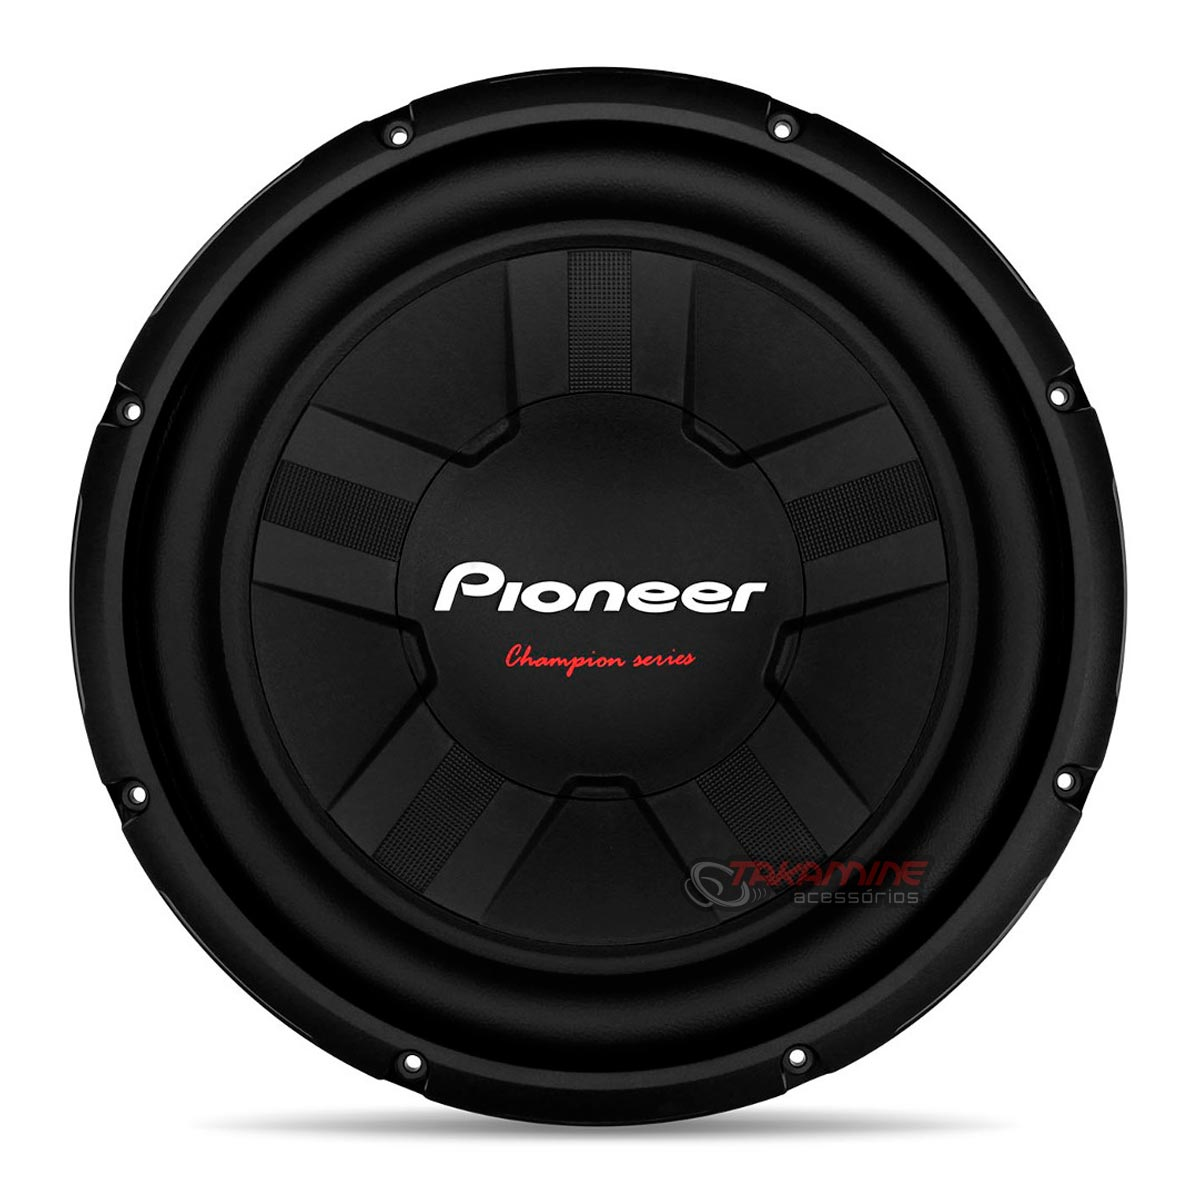 "Falante subwoofer Pioneer 12"" TS-W311S4 400WRMS Bobina Simples"